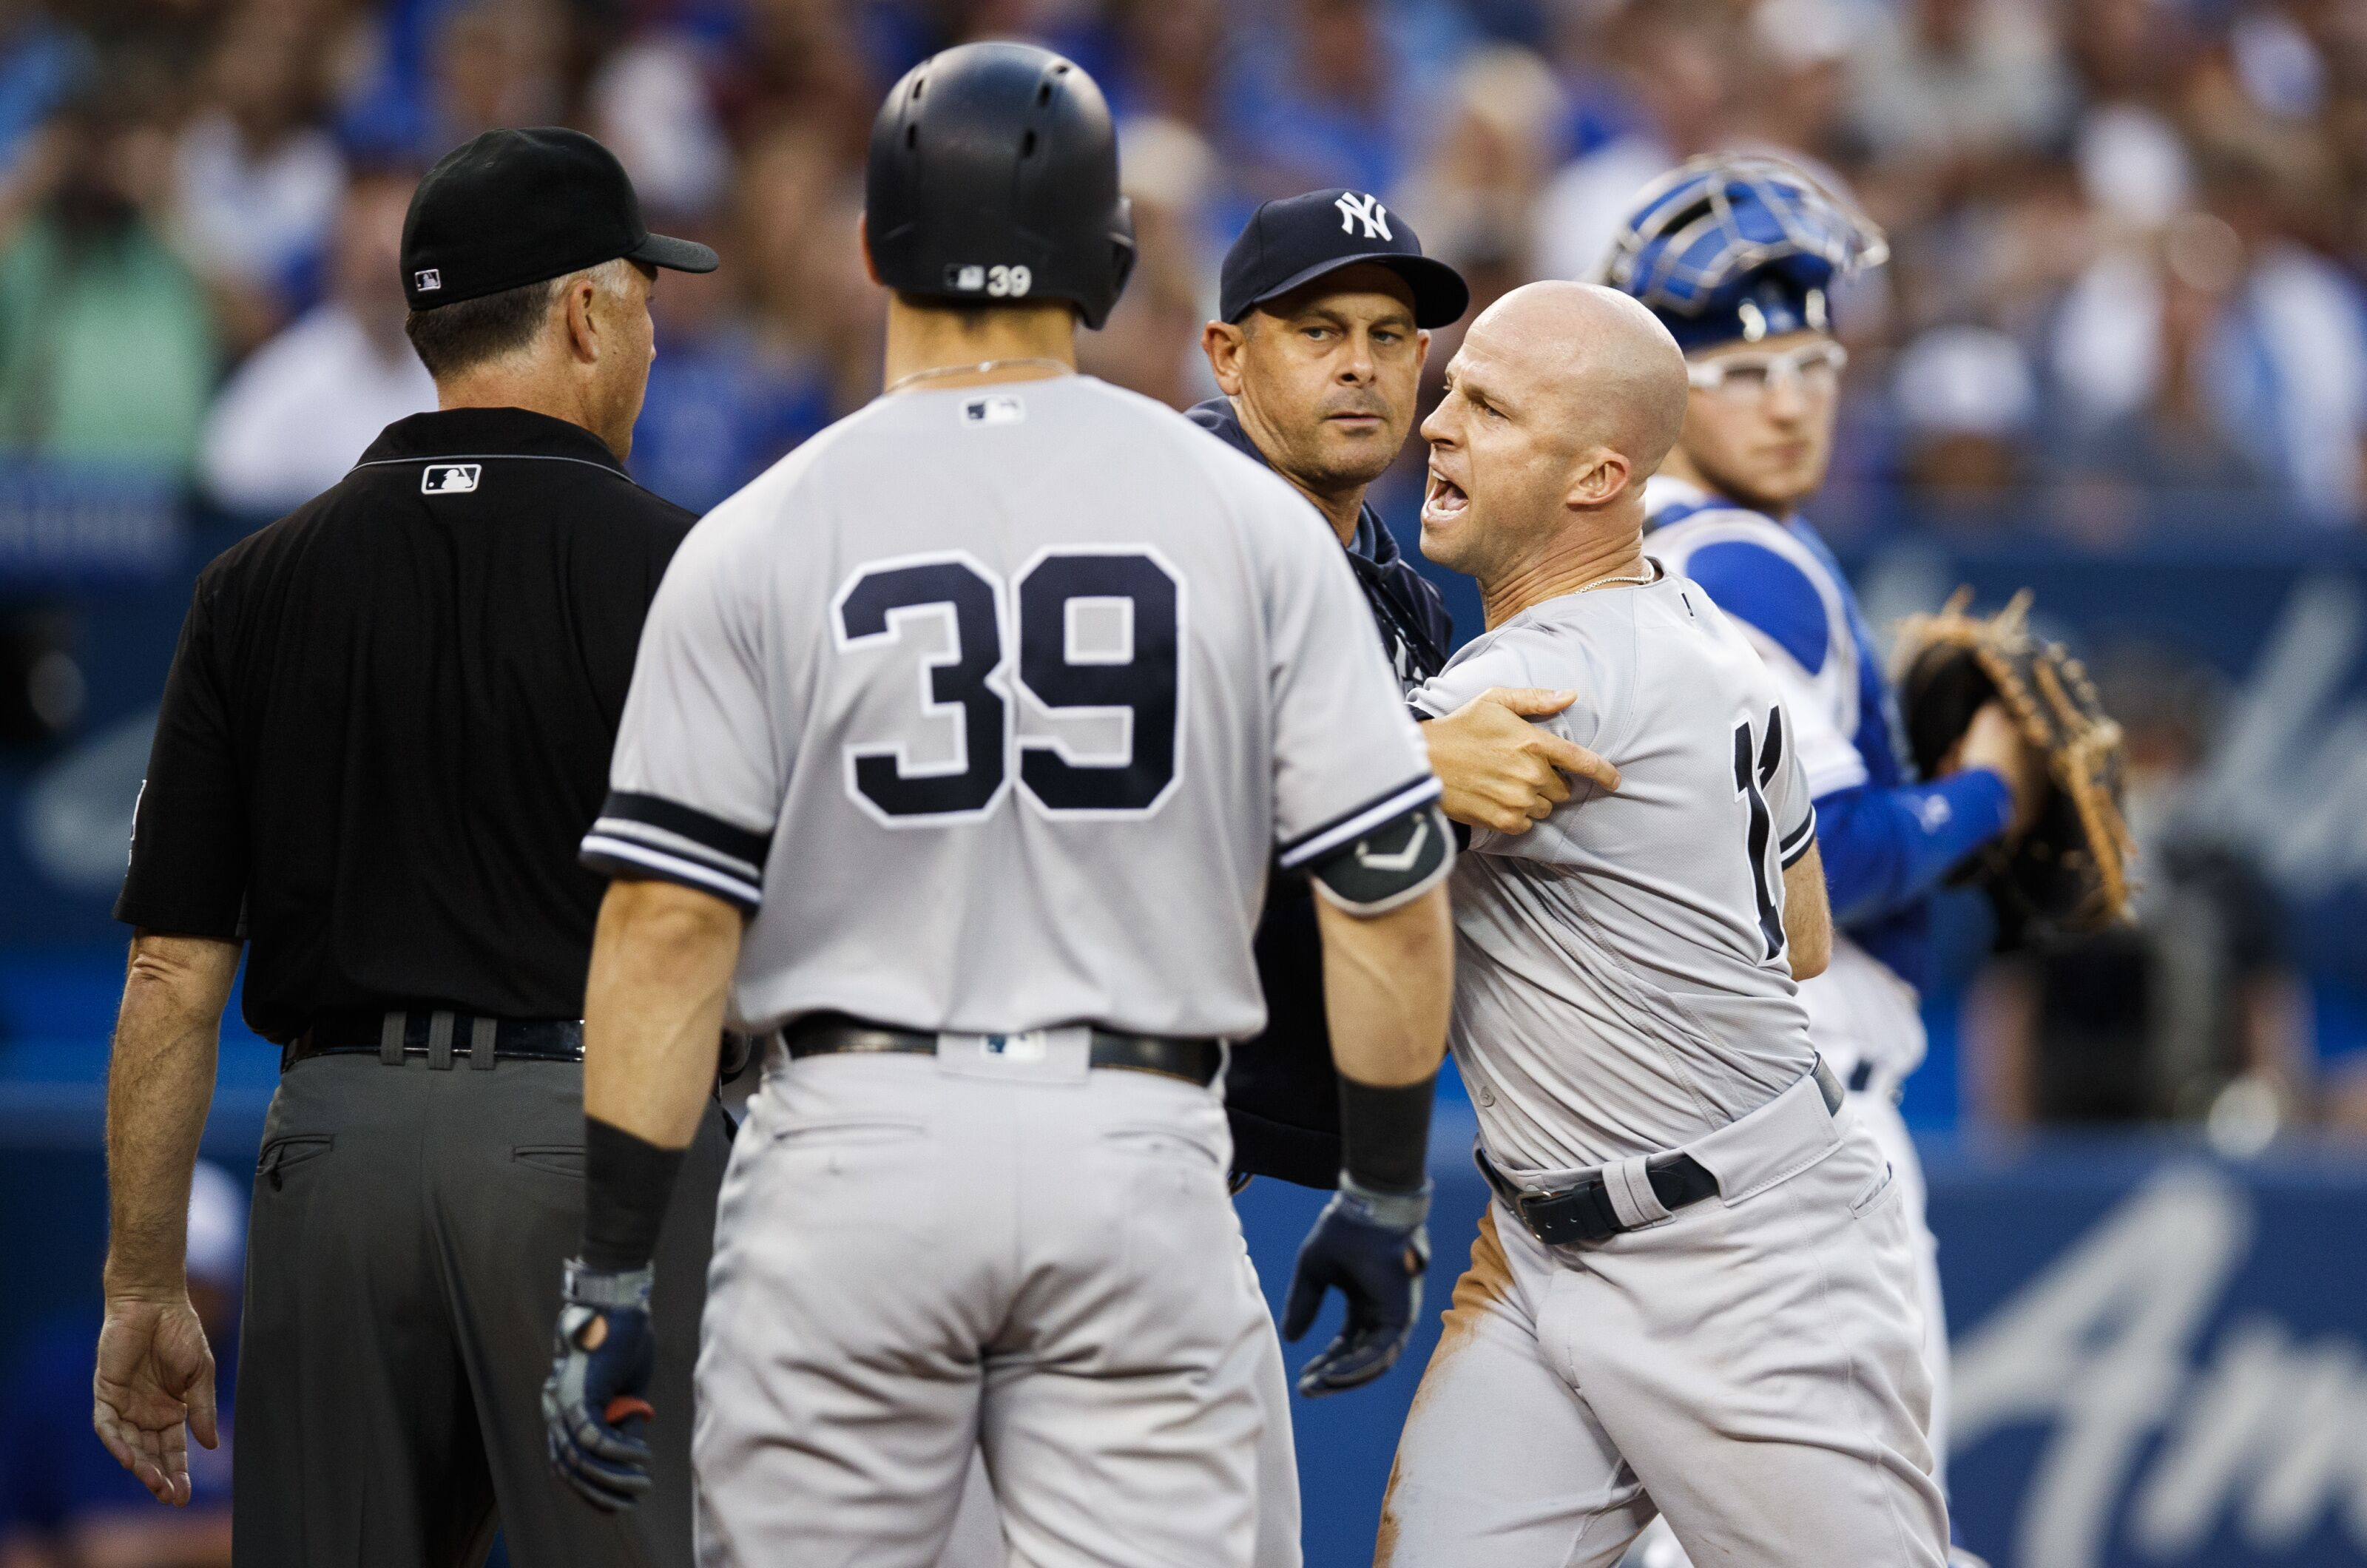 New York Yankees: Brett Gardner continues to grind out plays